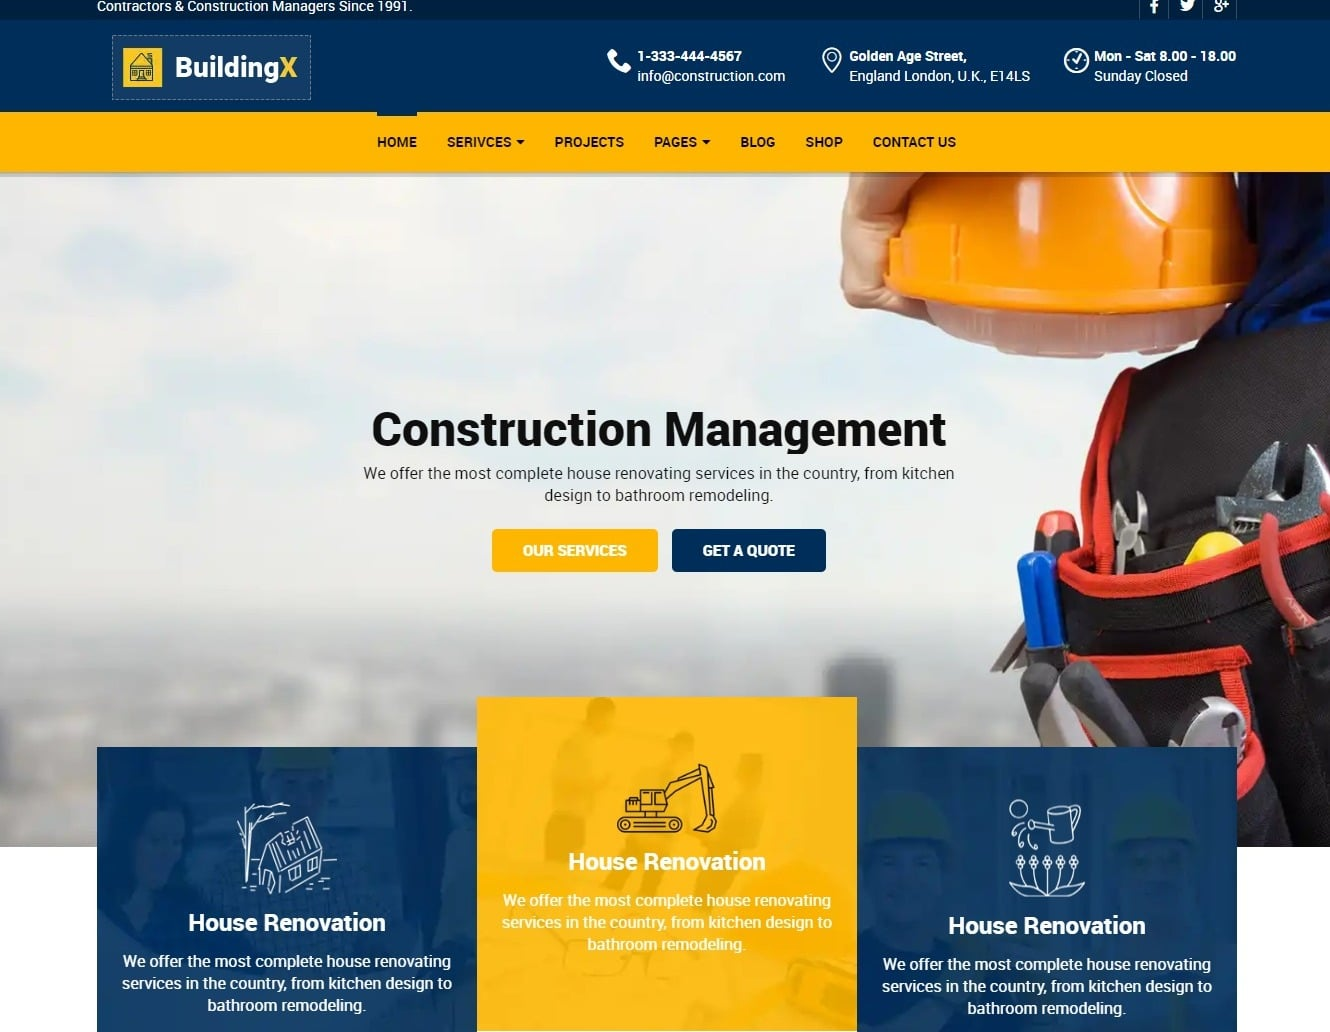 30+ Amazing Industrial & Construction Website Templates 2019